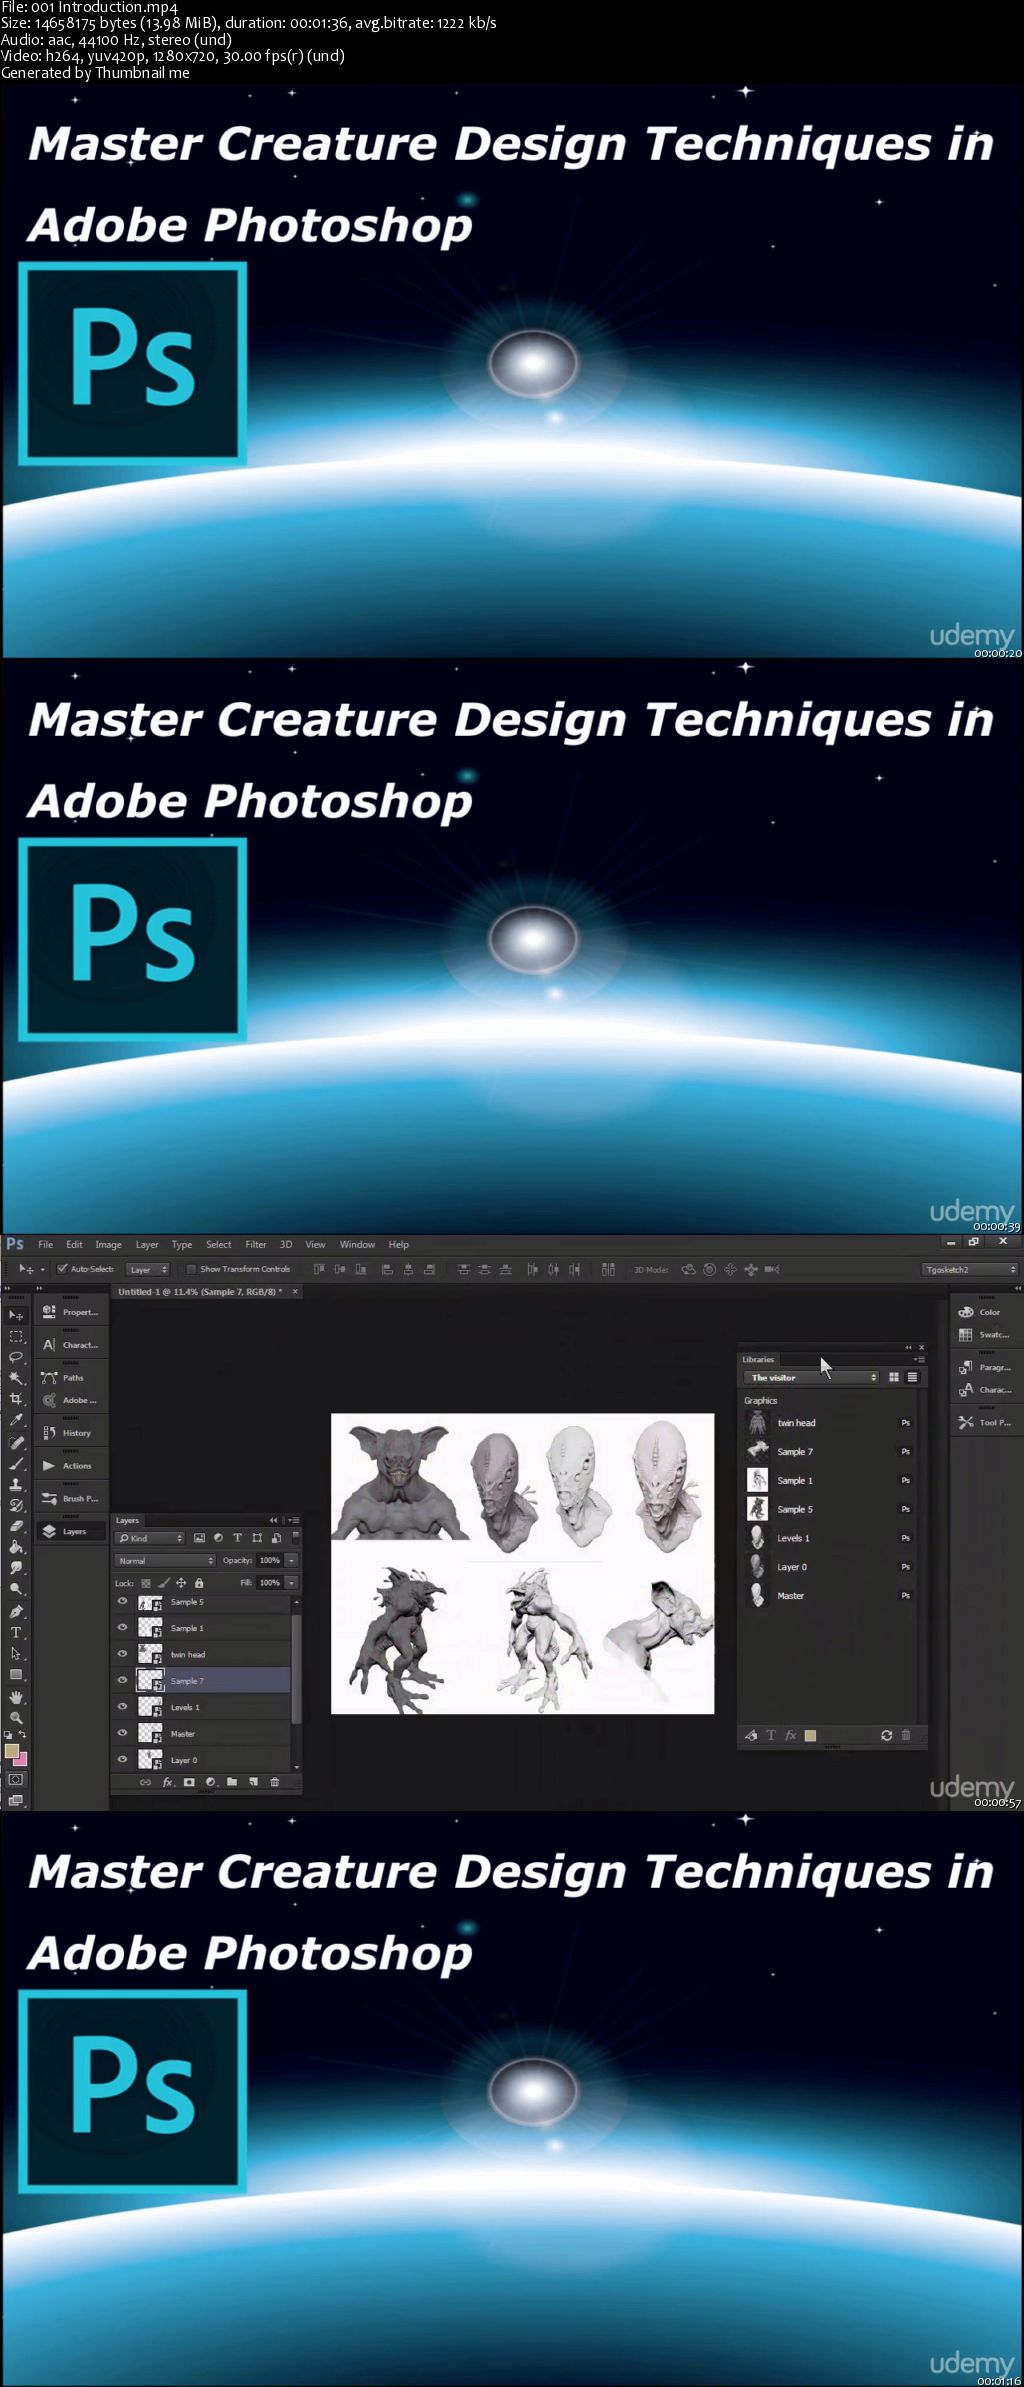 Master Creature Design Techniques in Adobe Photoshop (Pro)